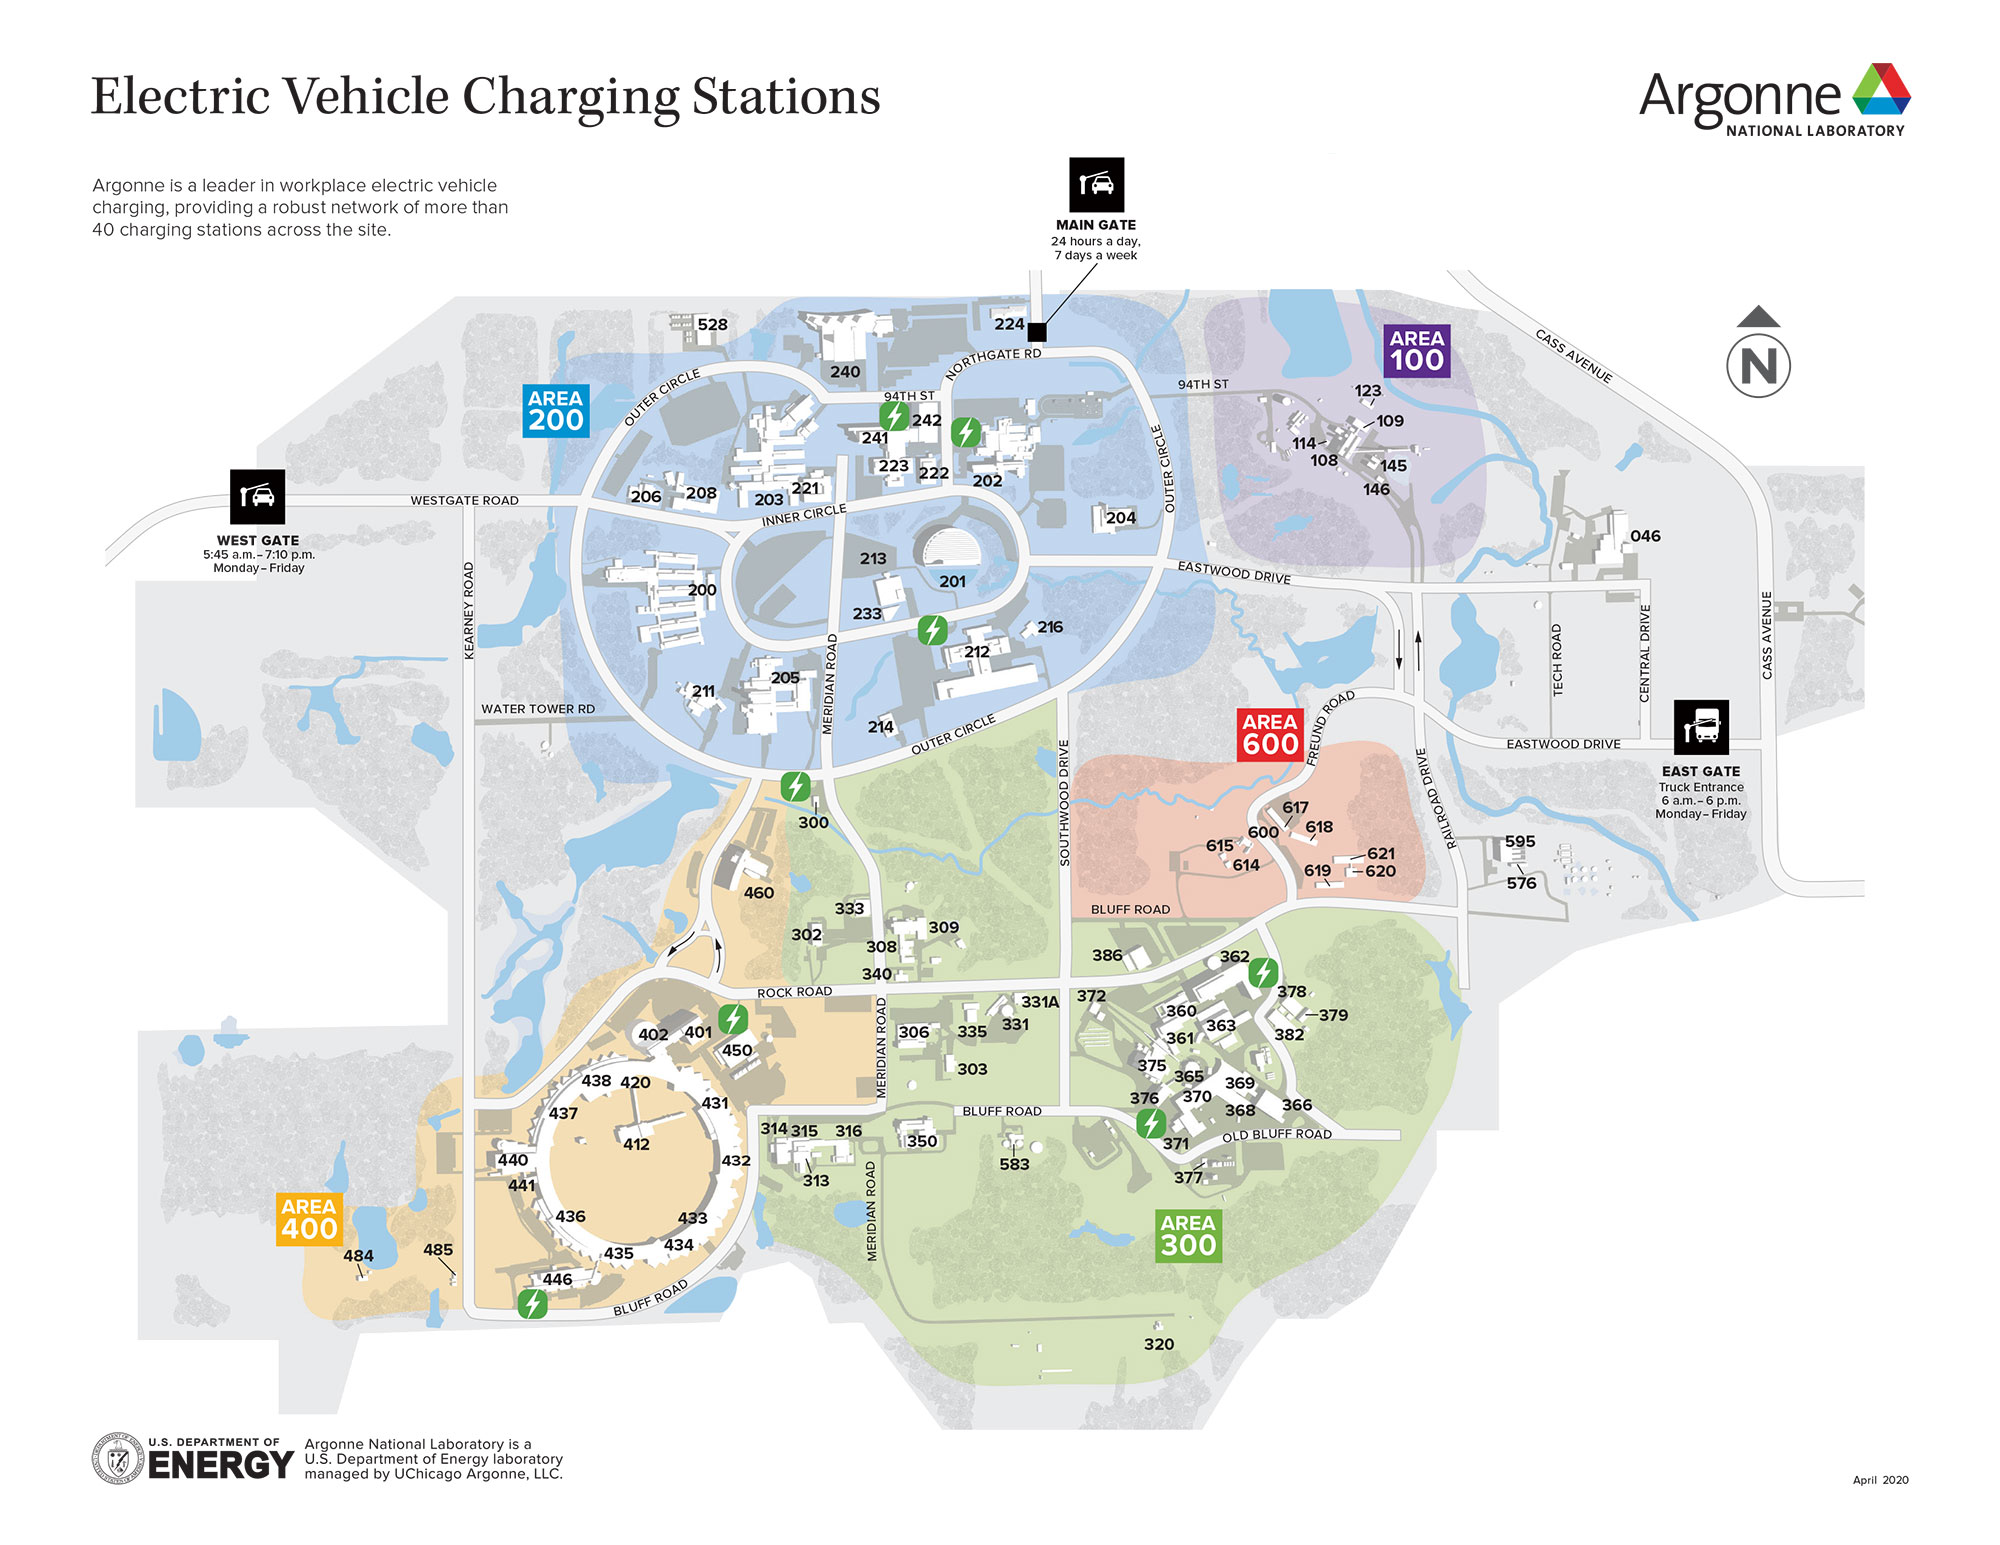 Electric Vehicle Charging Stations Map